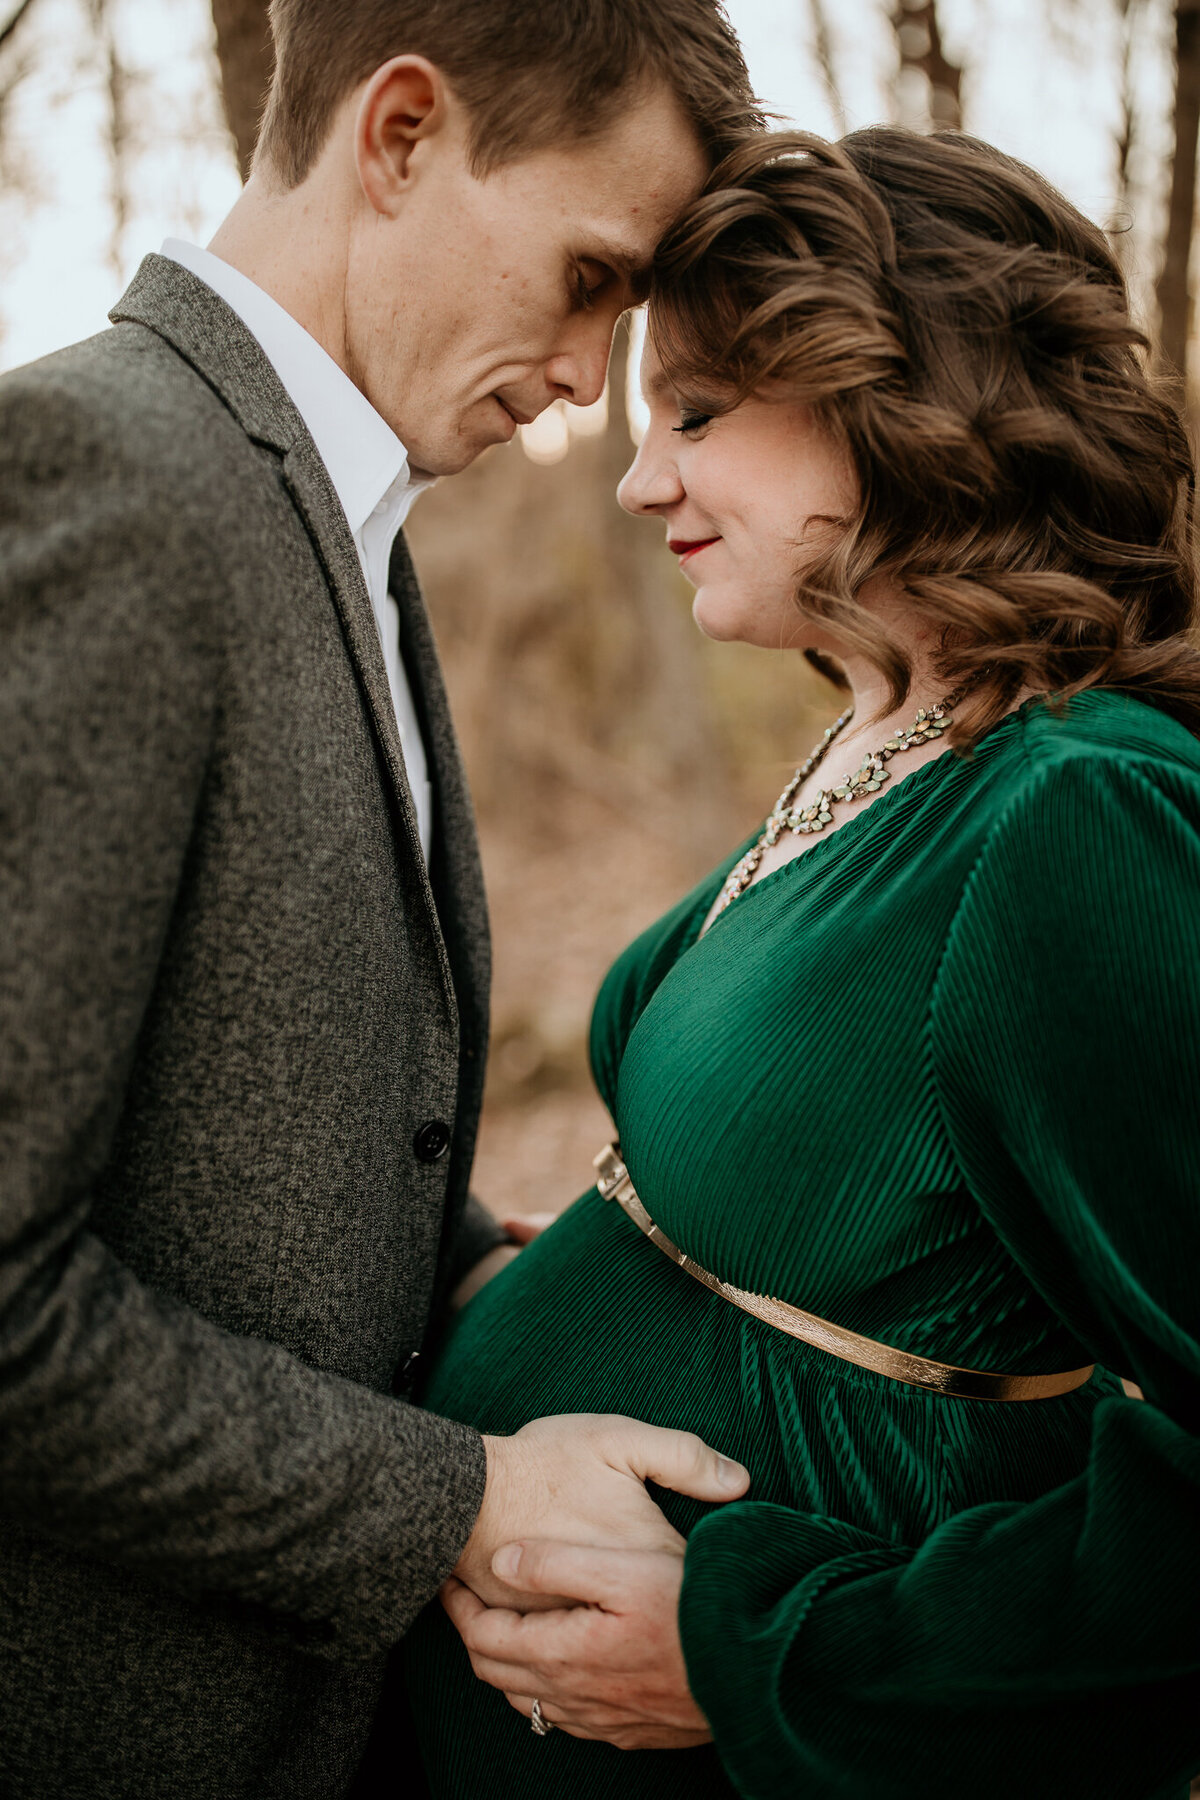 Katie Todd Maternity Photographer Wichita Kansas Andrea Corwin Photography web (44 of 46)